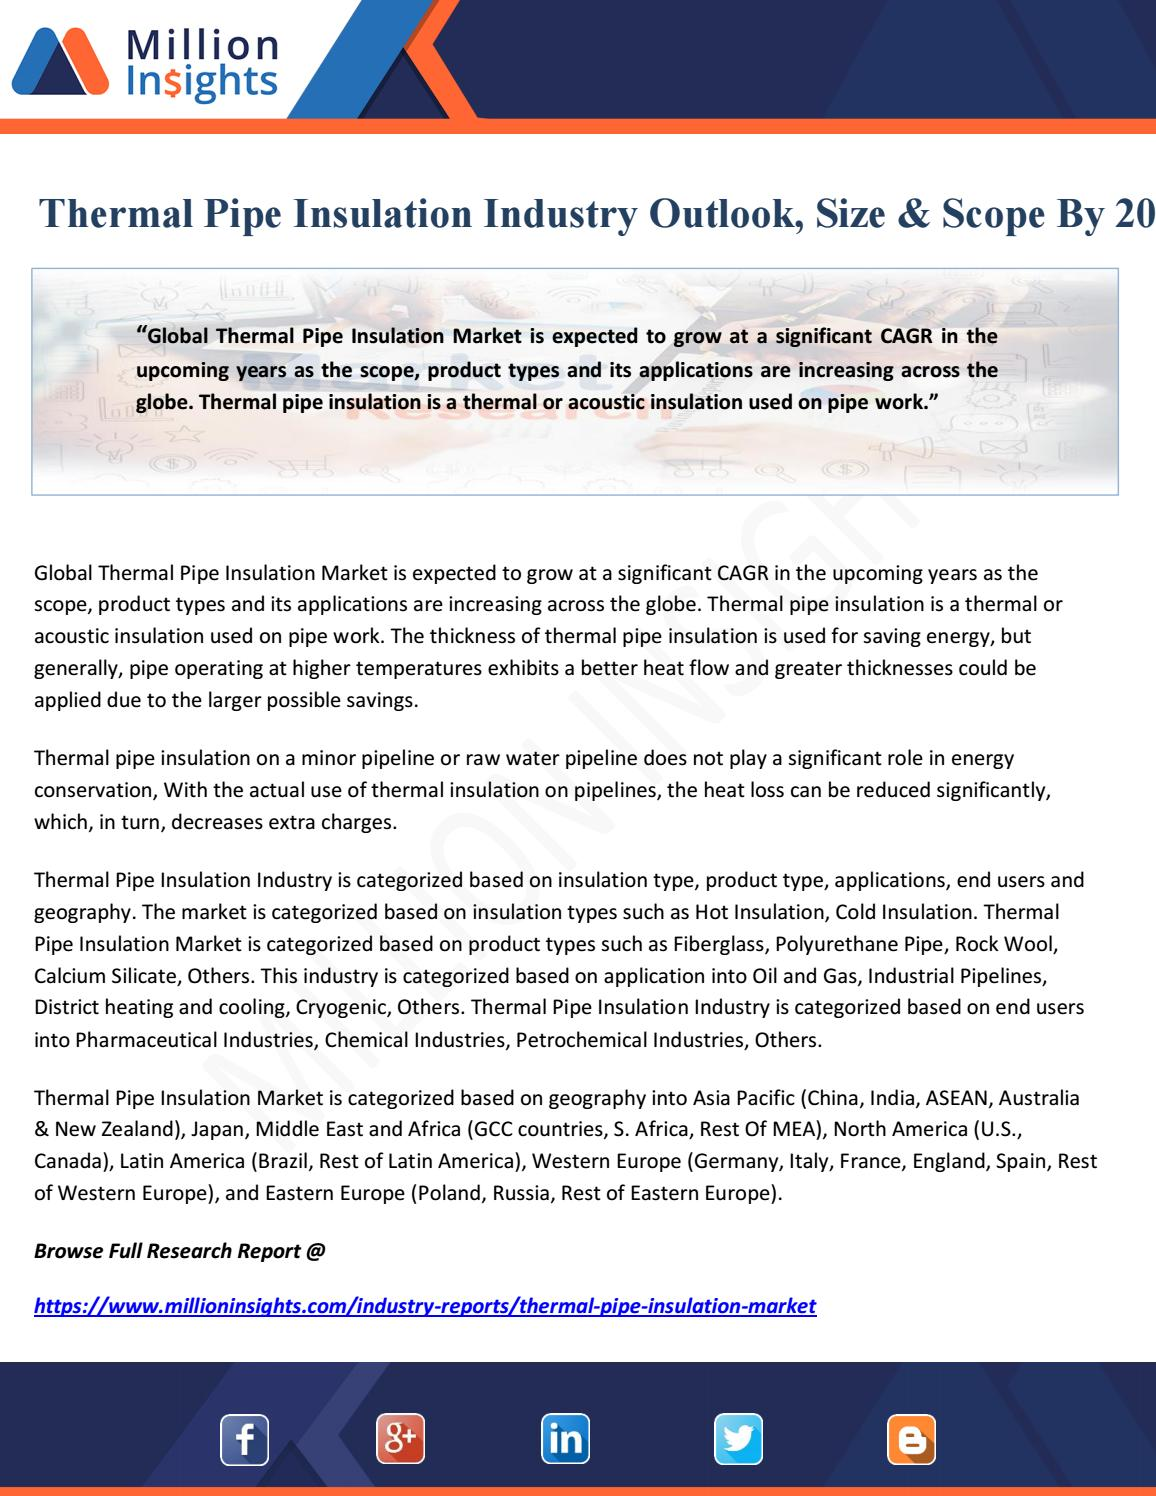 Thermal Pipe Insulation Industry Outlook, Size & Scope By